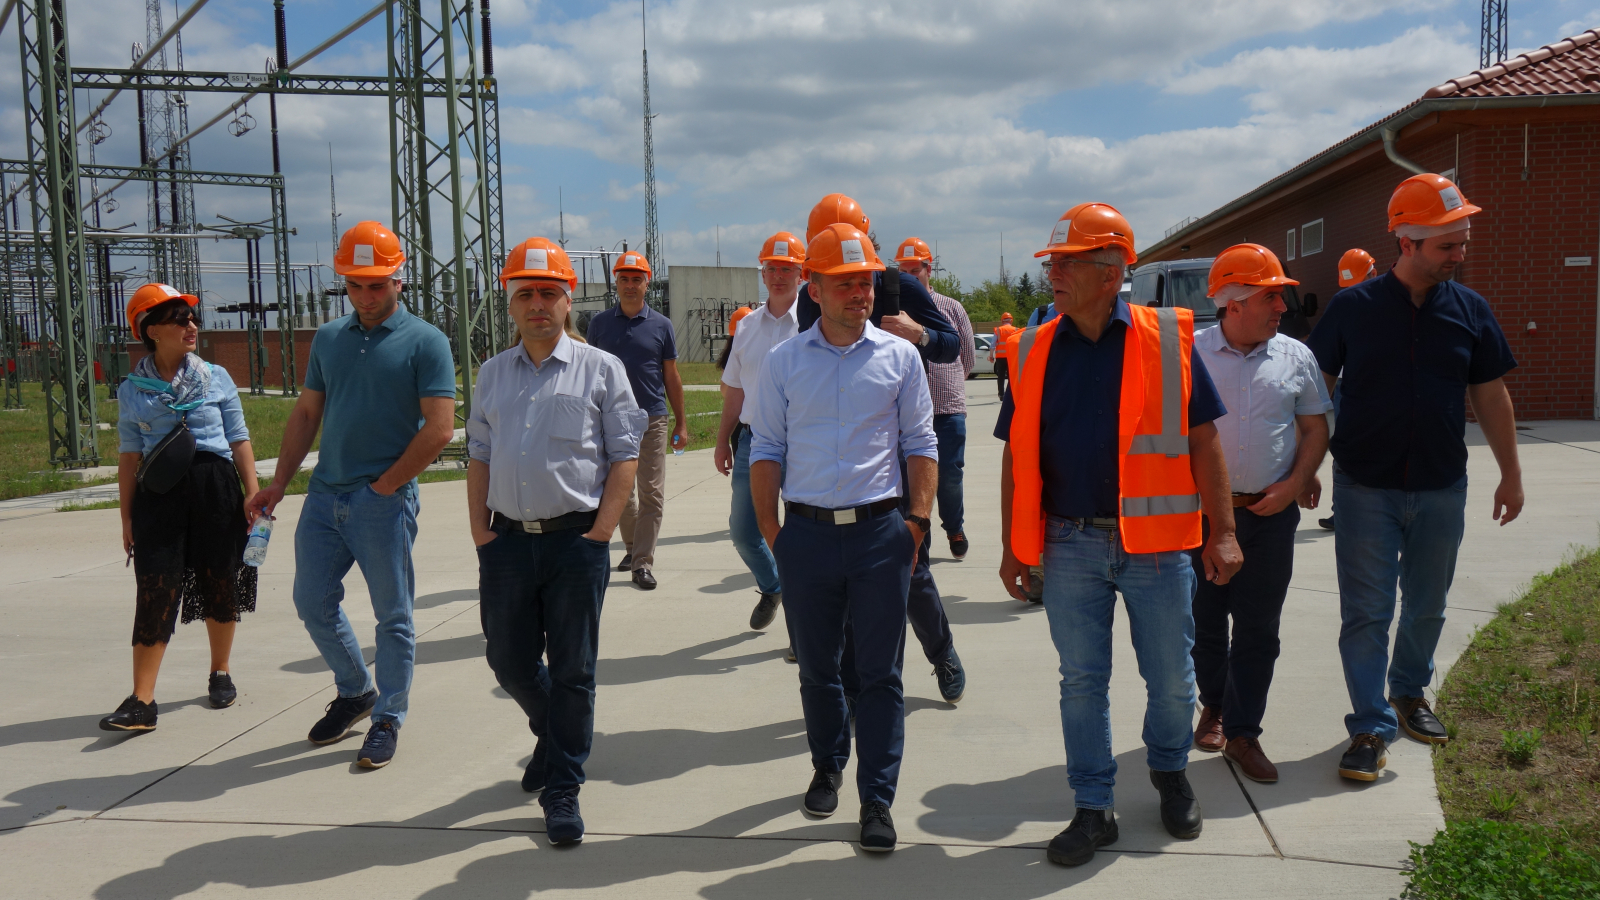 GSE experts visiting 50 Hertz in July 2019